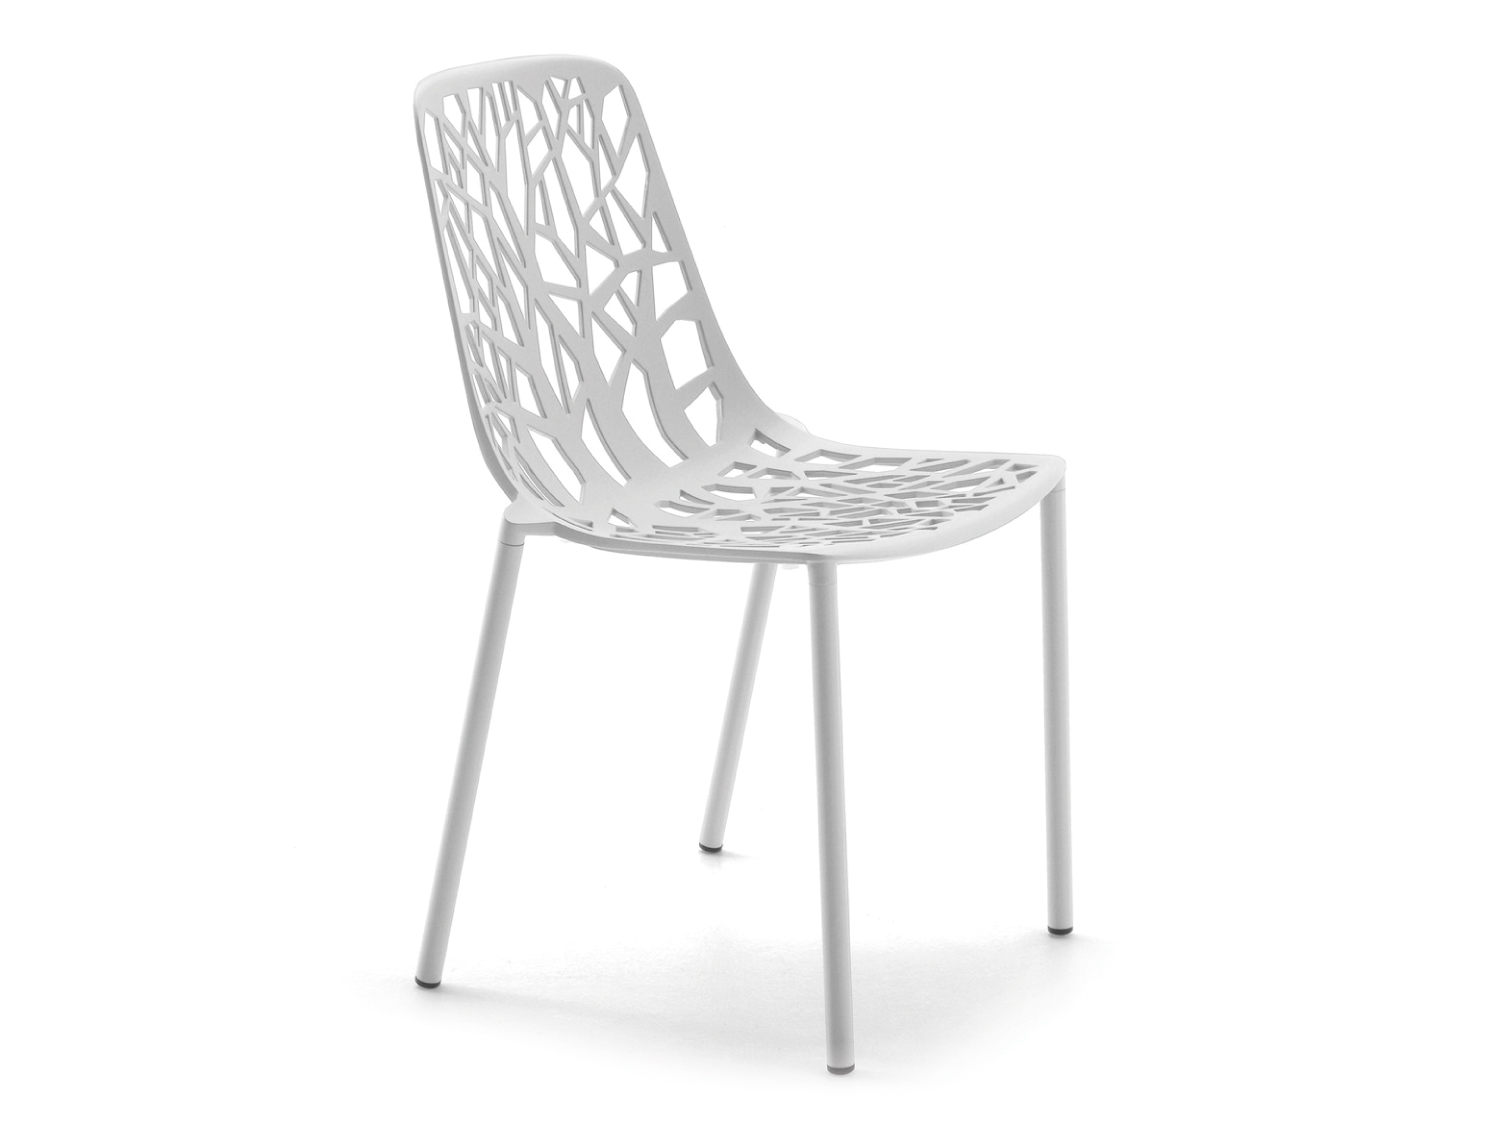 Fast-forest-chair-white-def